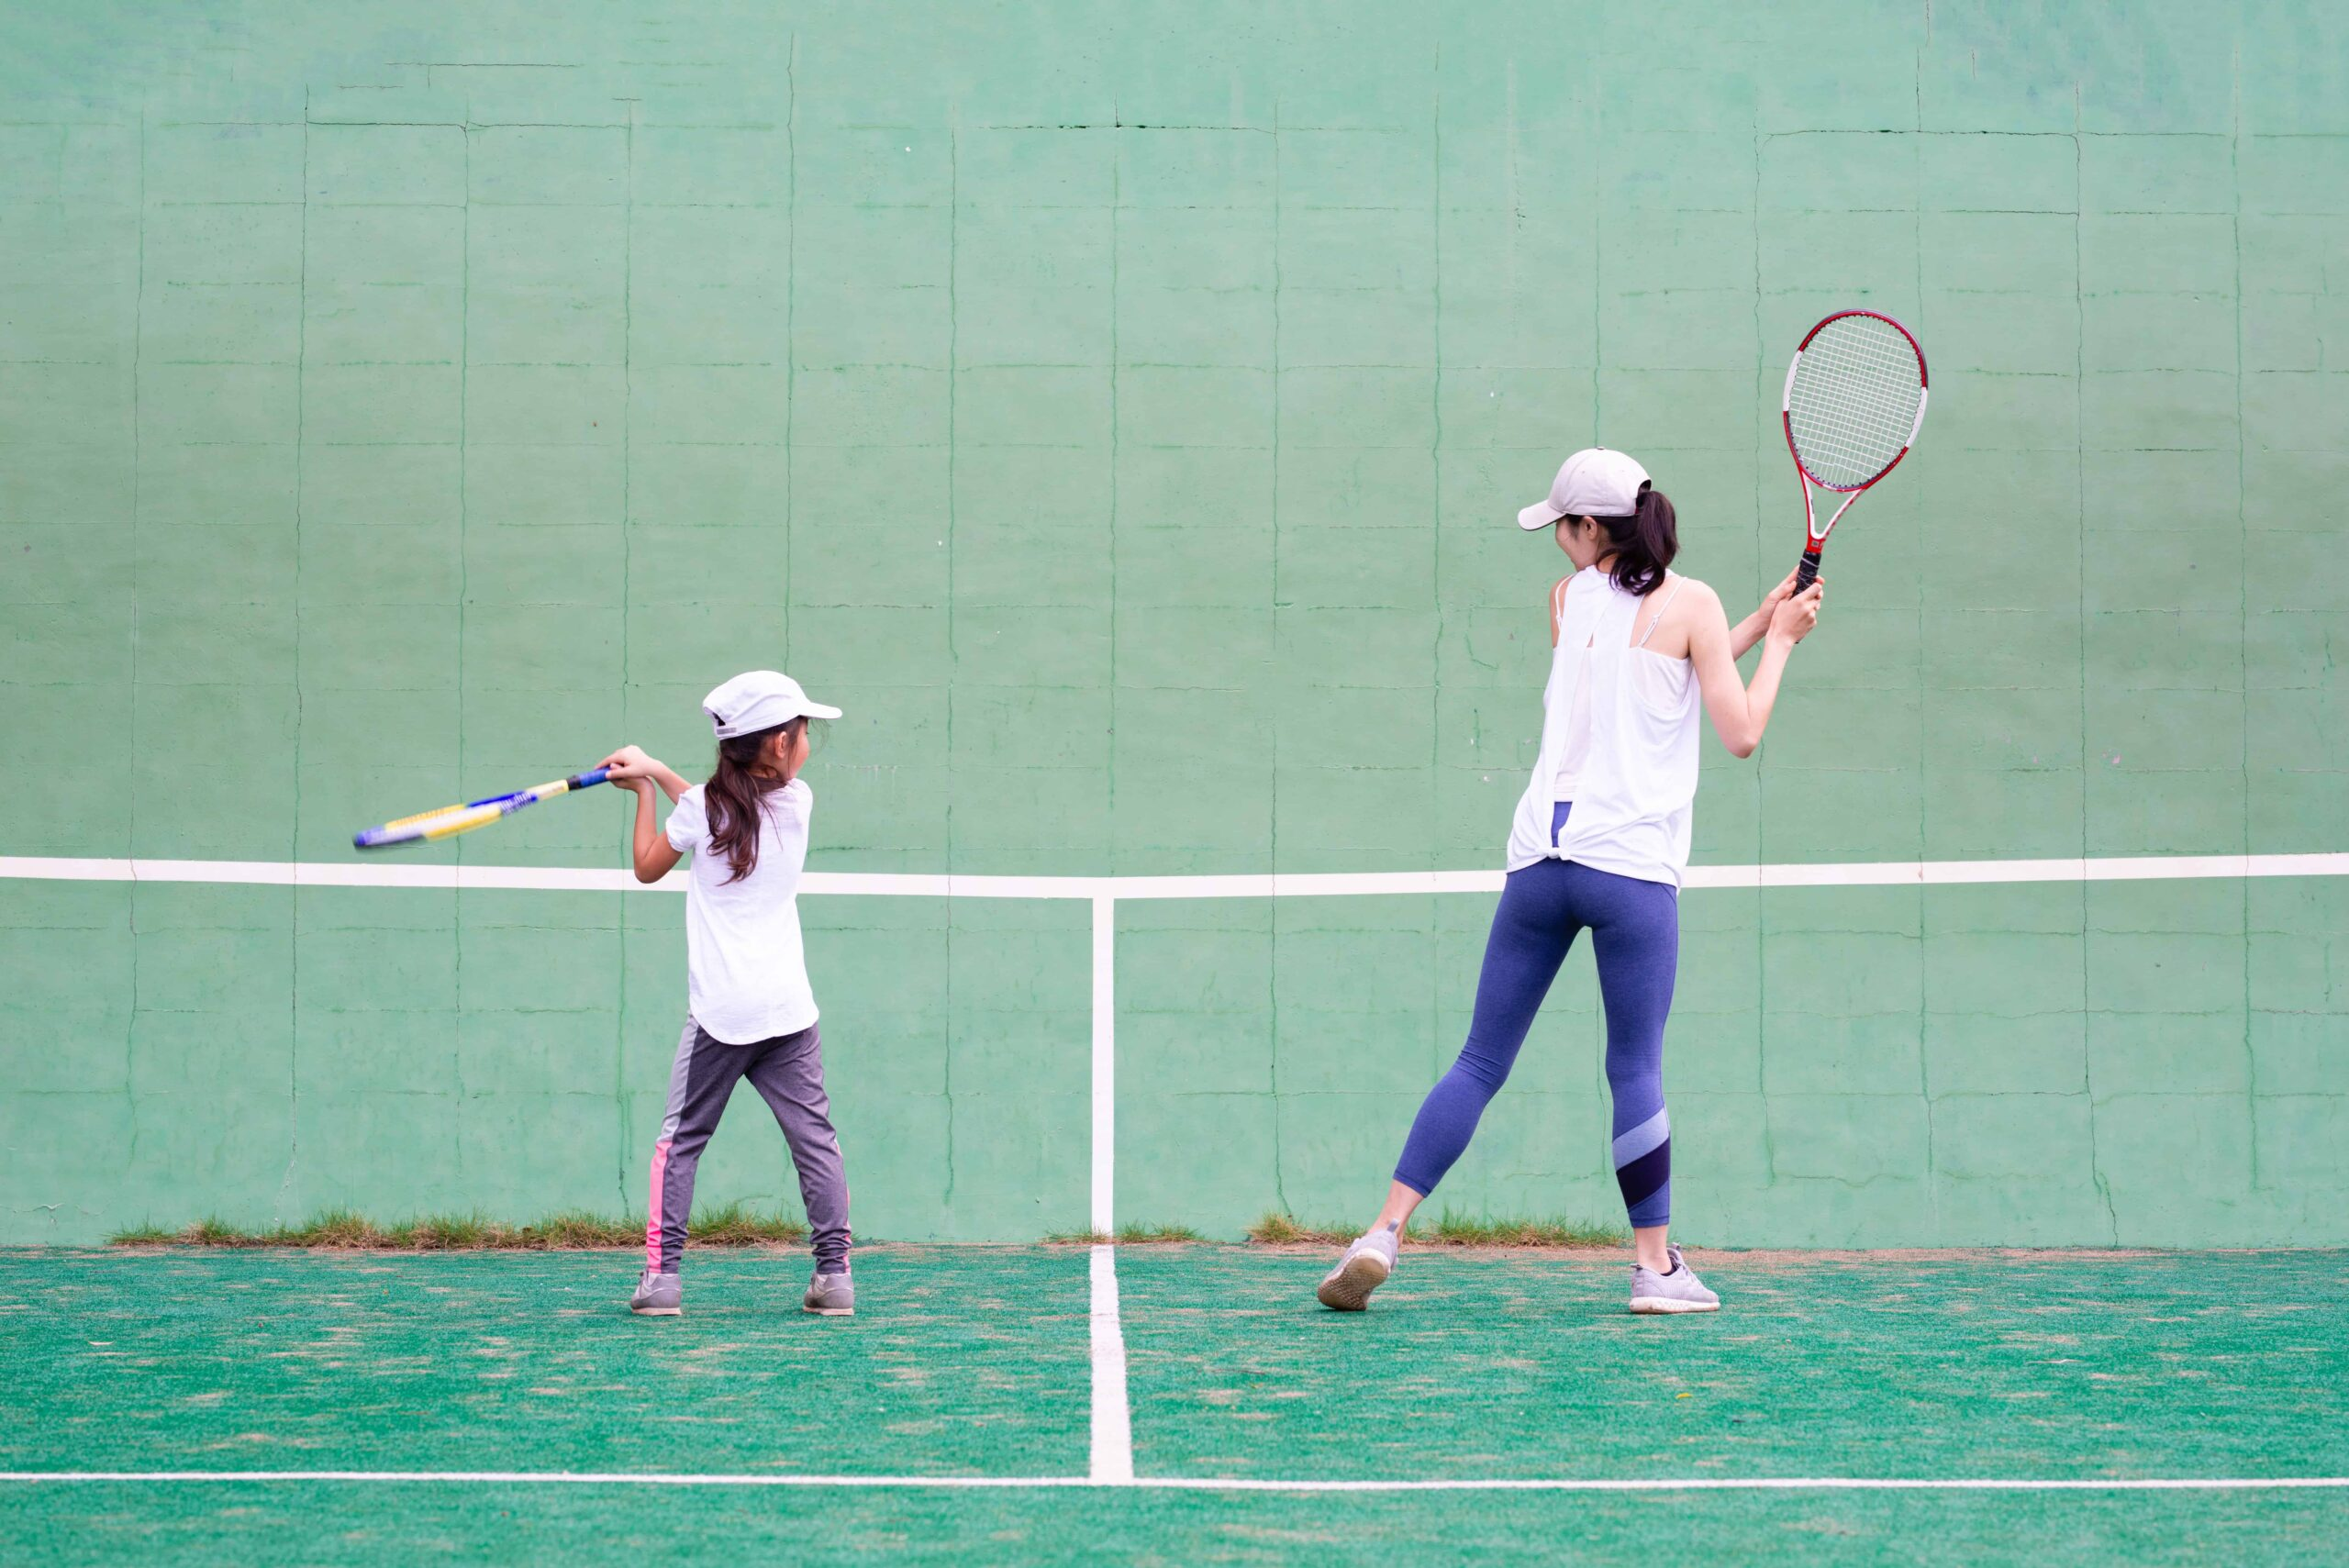 Mom and daughter practising tennis against a wall together.